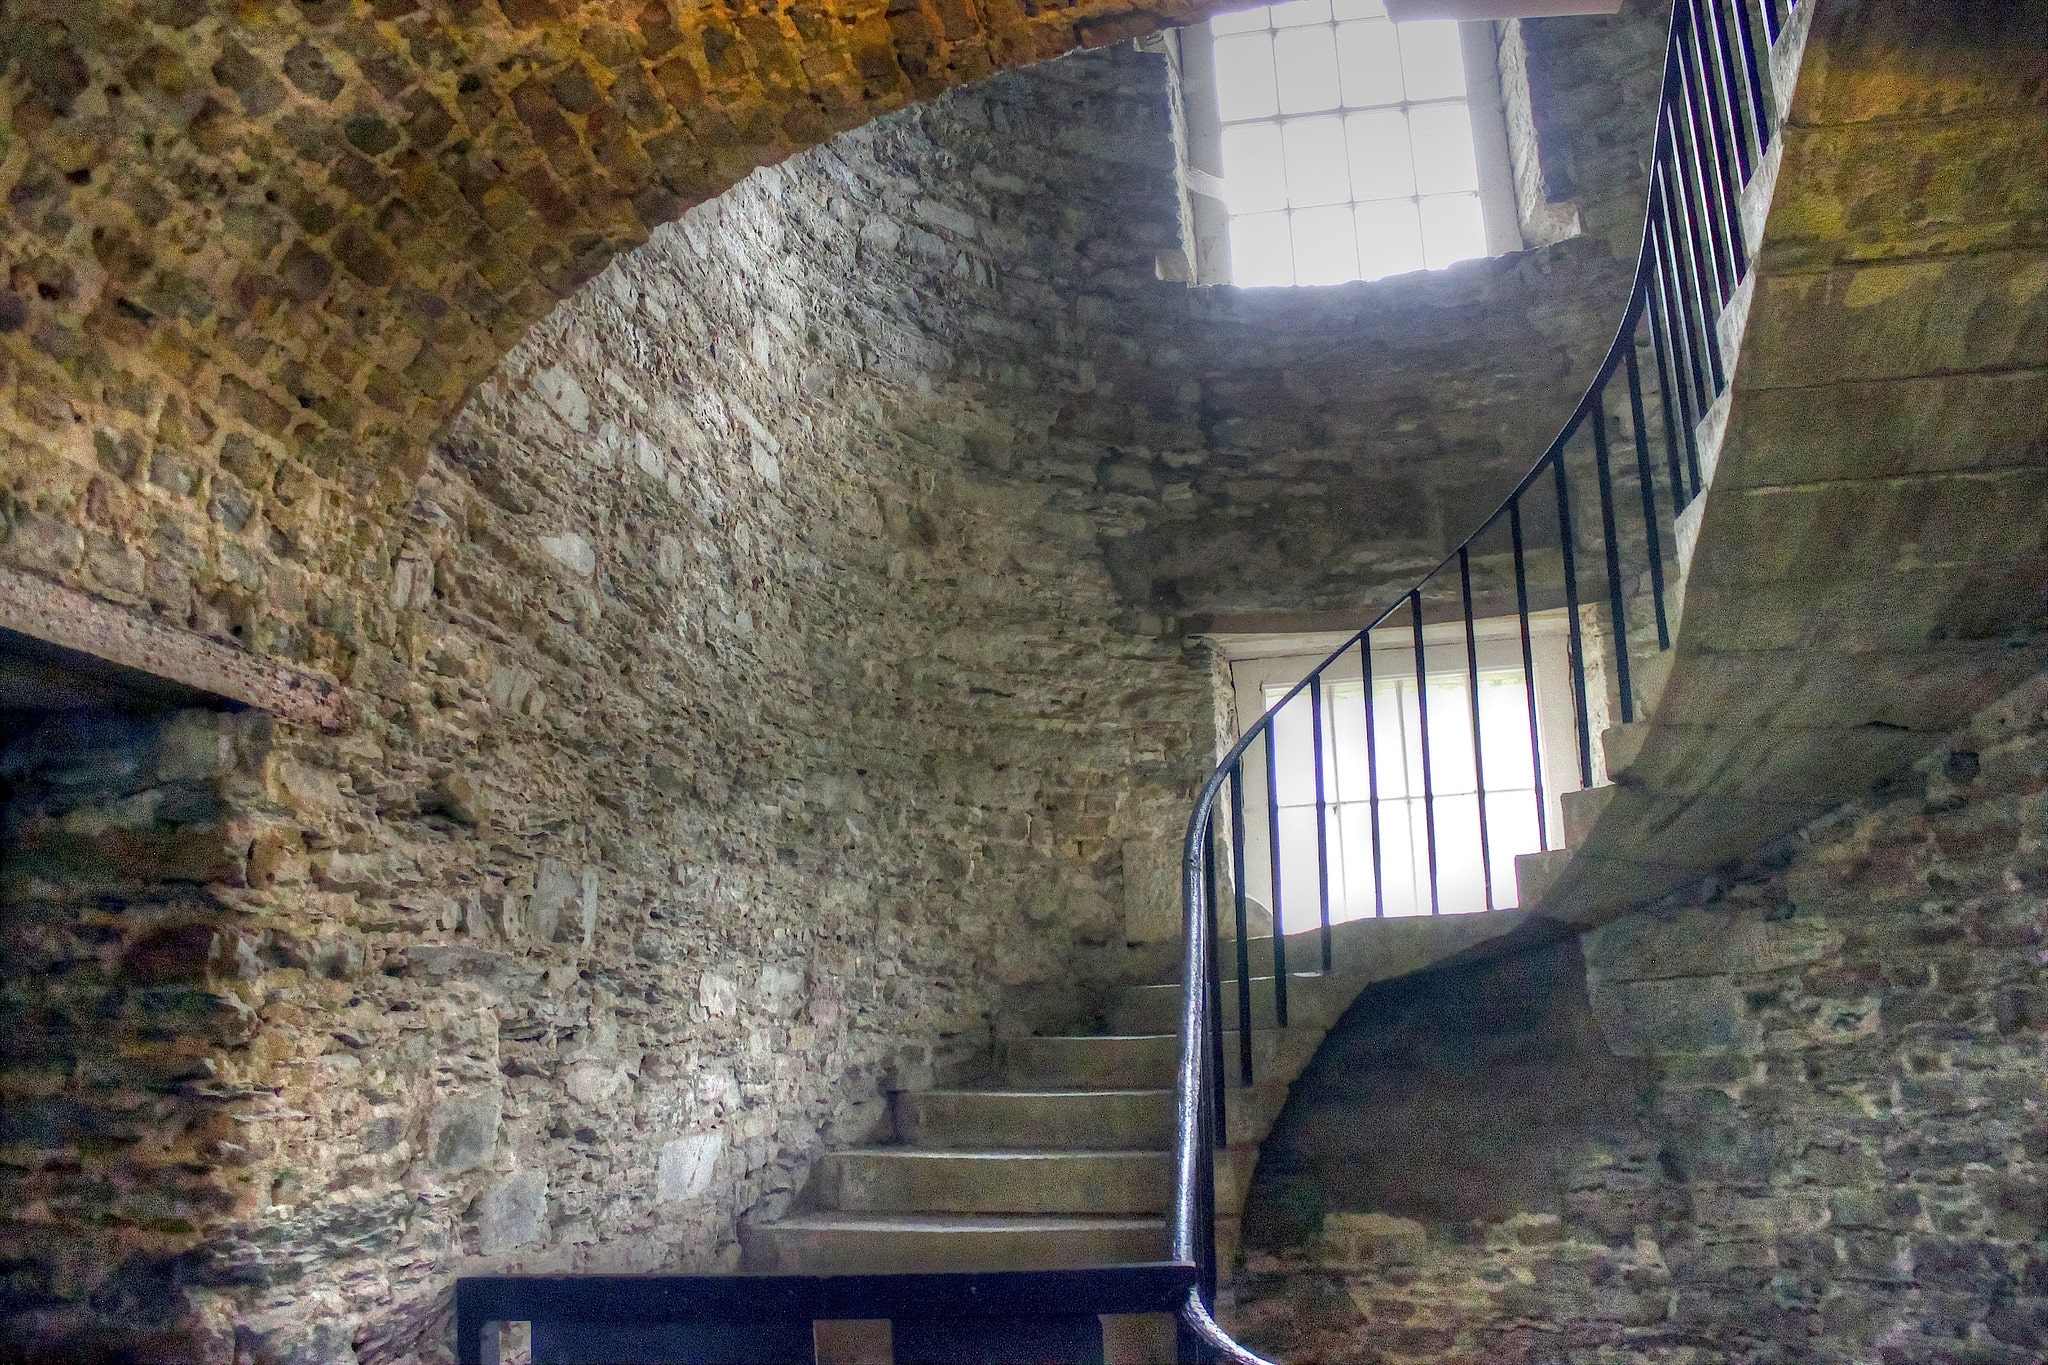 Exploring the Cork City Gaol is one of the best things to do in Cork